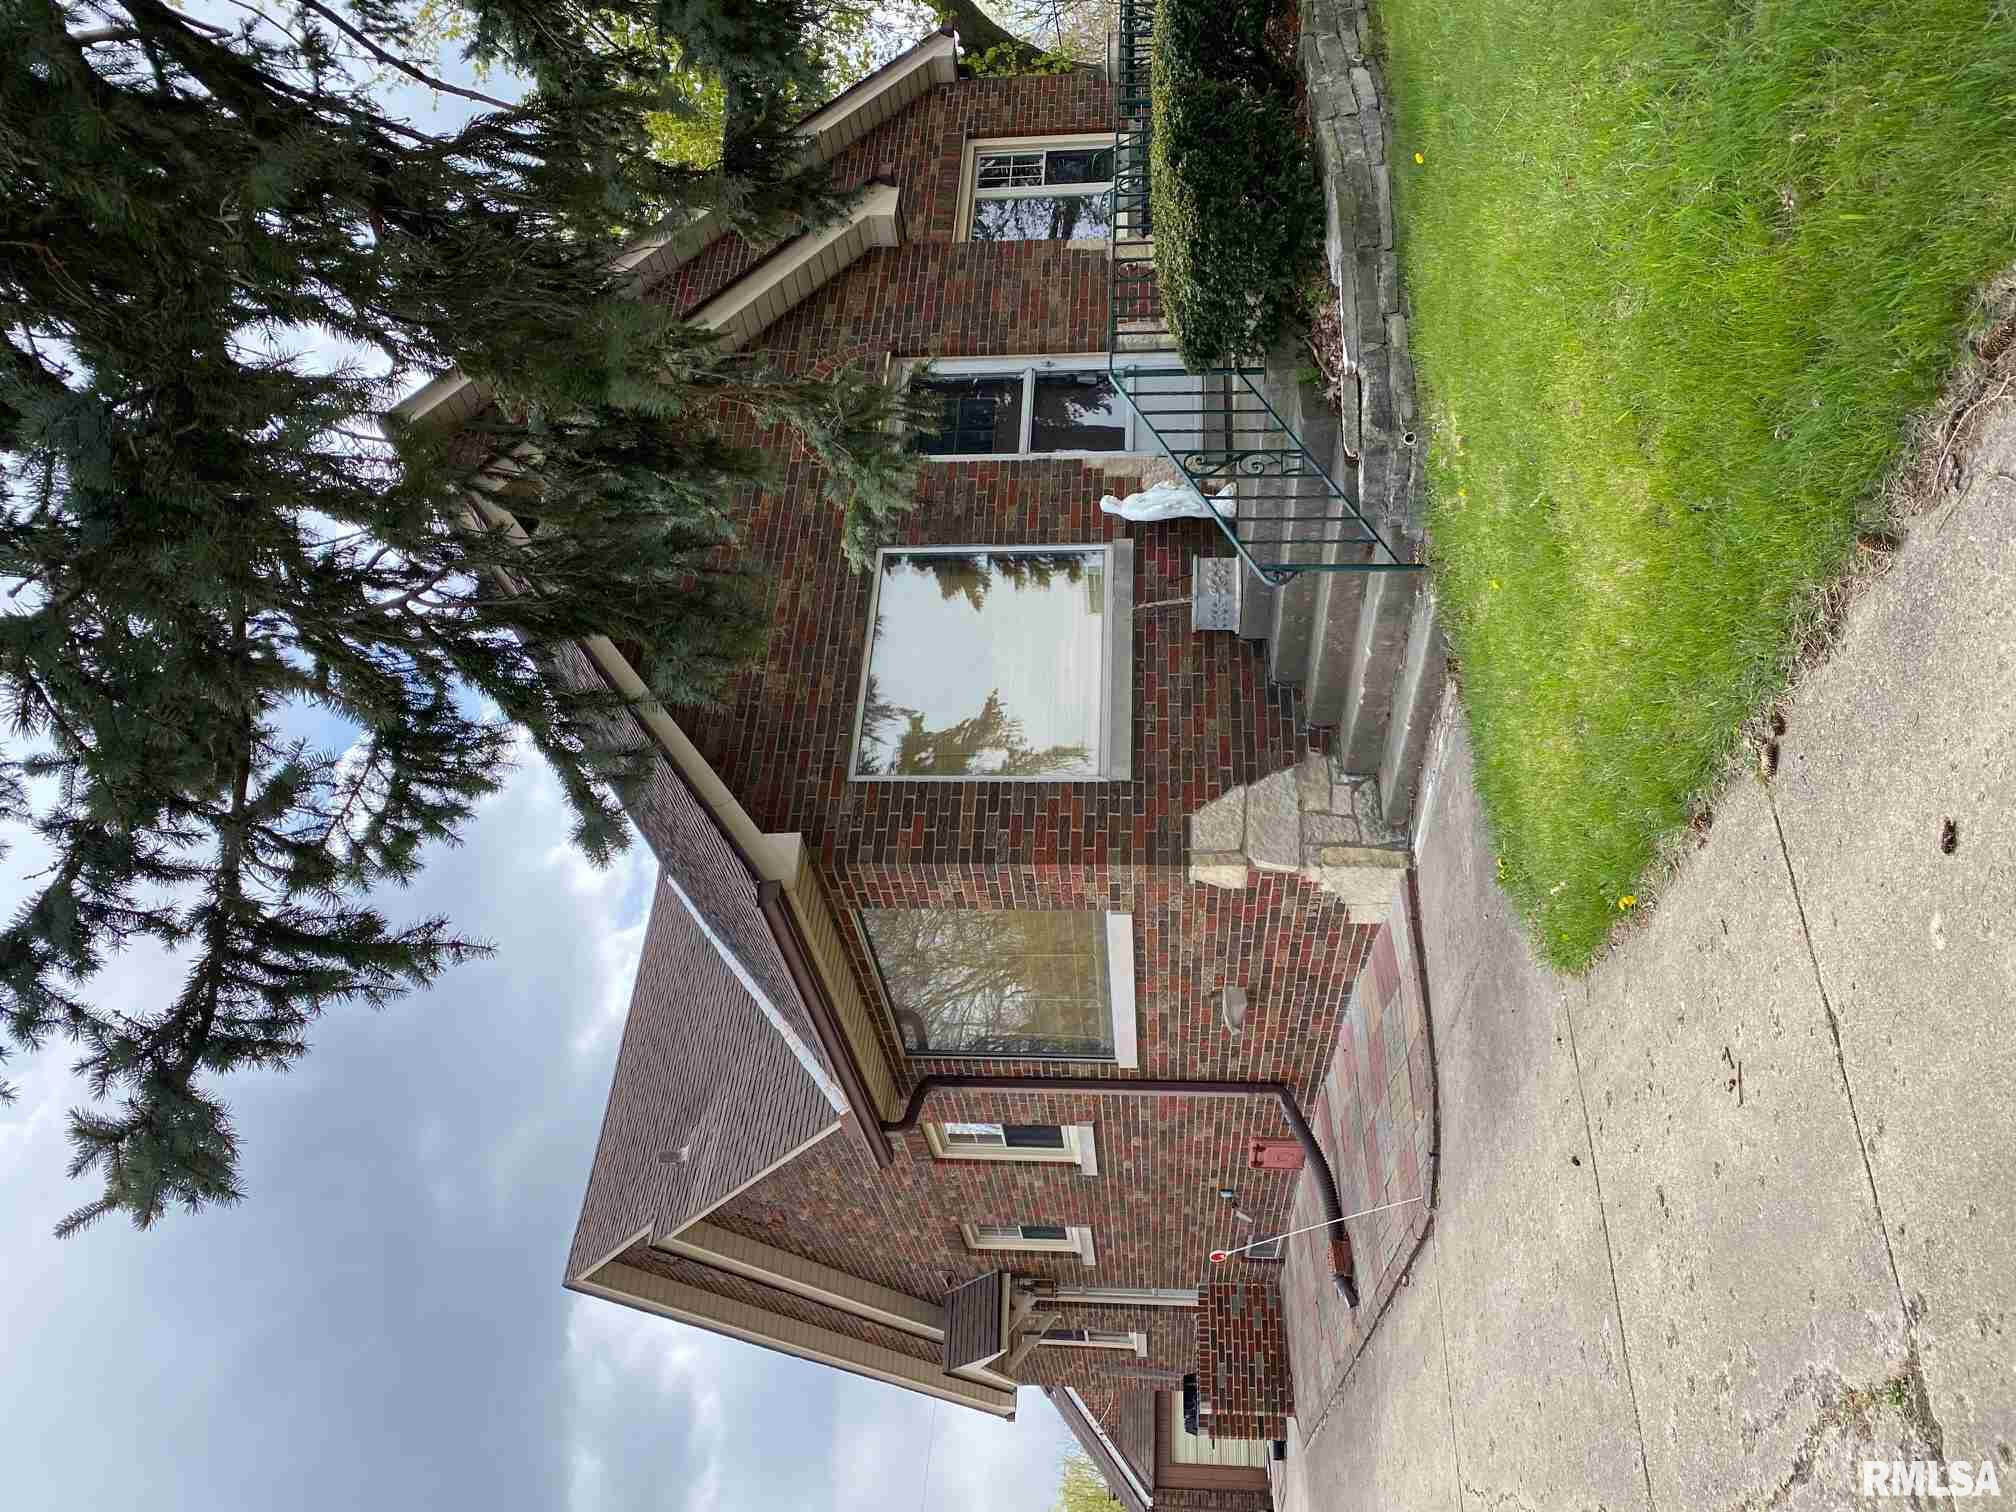 400 FONDULAC Property Photo - East Peoria, IL real estate listing